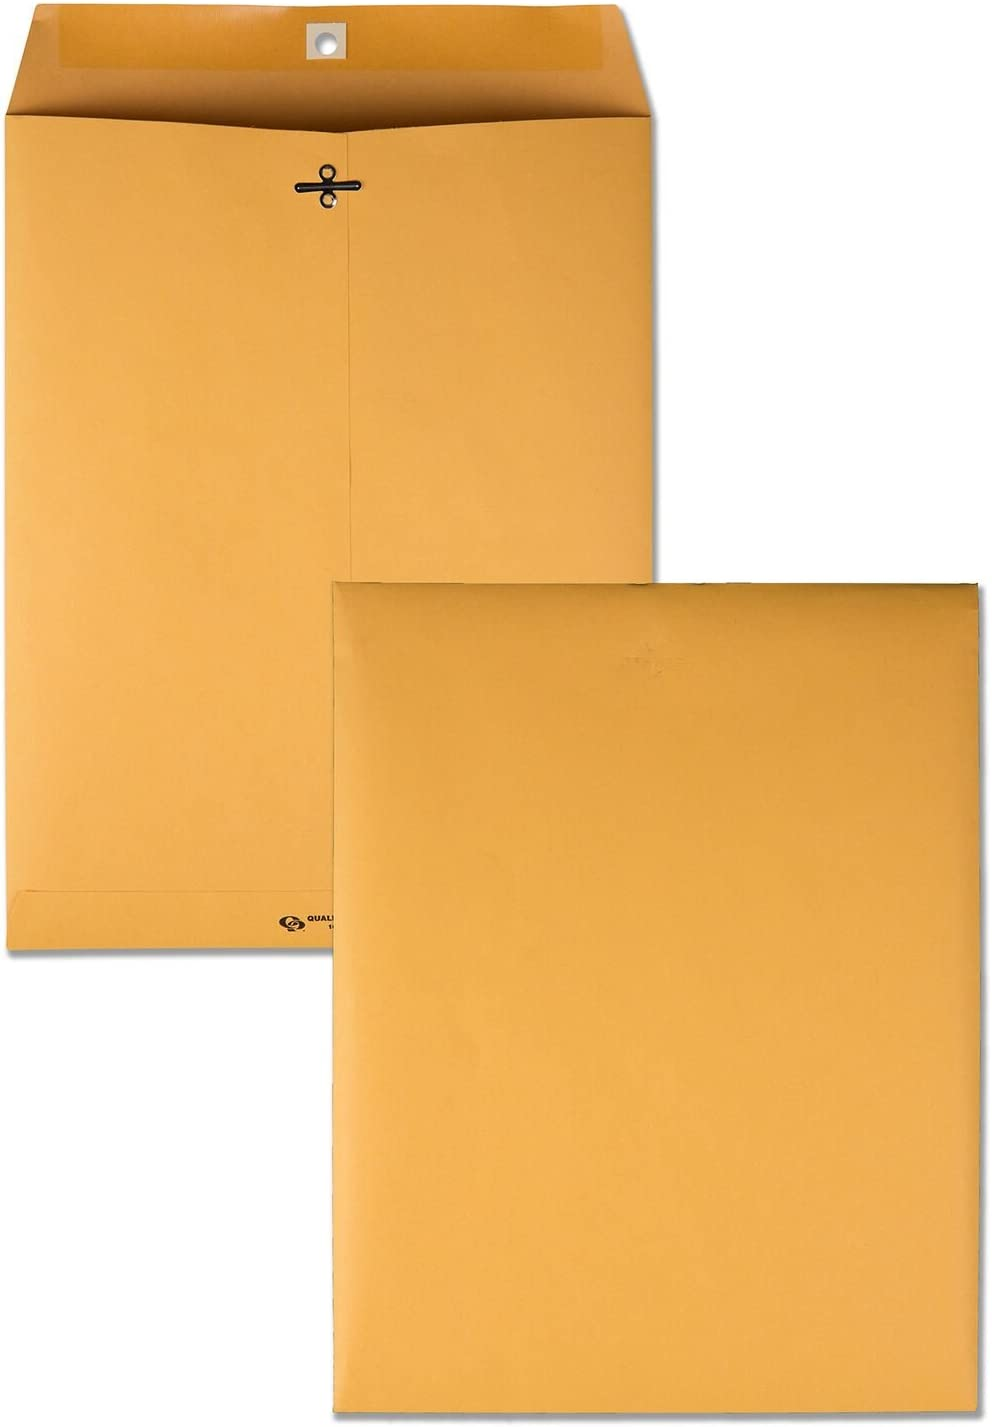 Quality Park 10 x 13 Clasp Envelopes, Gummed, Moisture-Activated Adhesive for Permanent Secure Seal, 28 lb Paper, Brown Kraft, 100/Box (QUA37897)